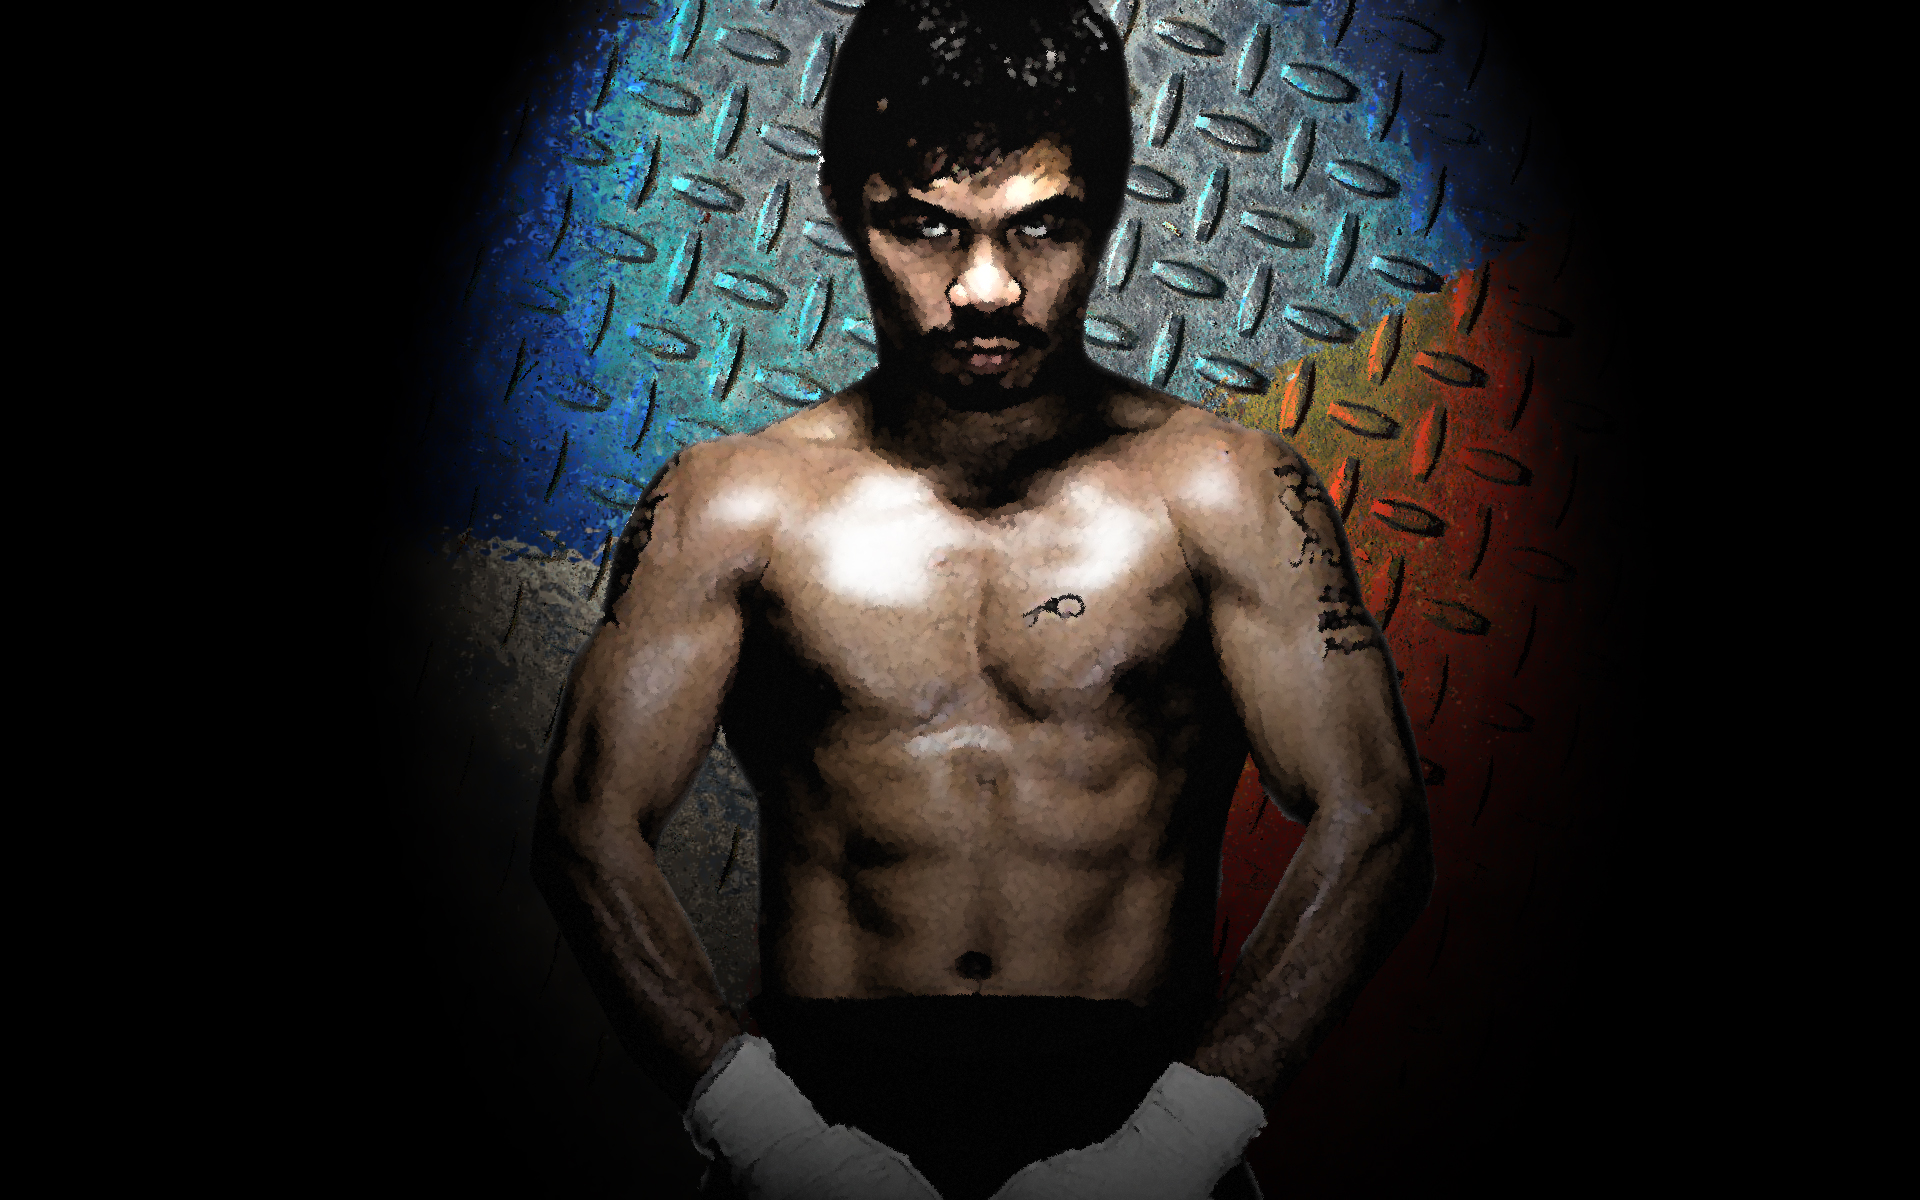 manny pacquiao image best HD wallpaper is high definition wallpaper. You can make manny pacquiao image best HD wallpaper For your Desktop Background, ...